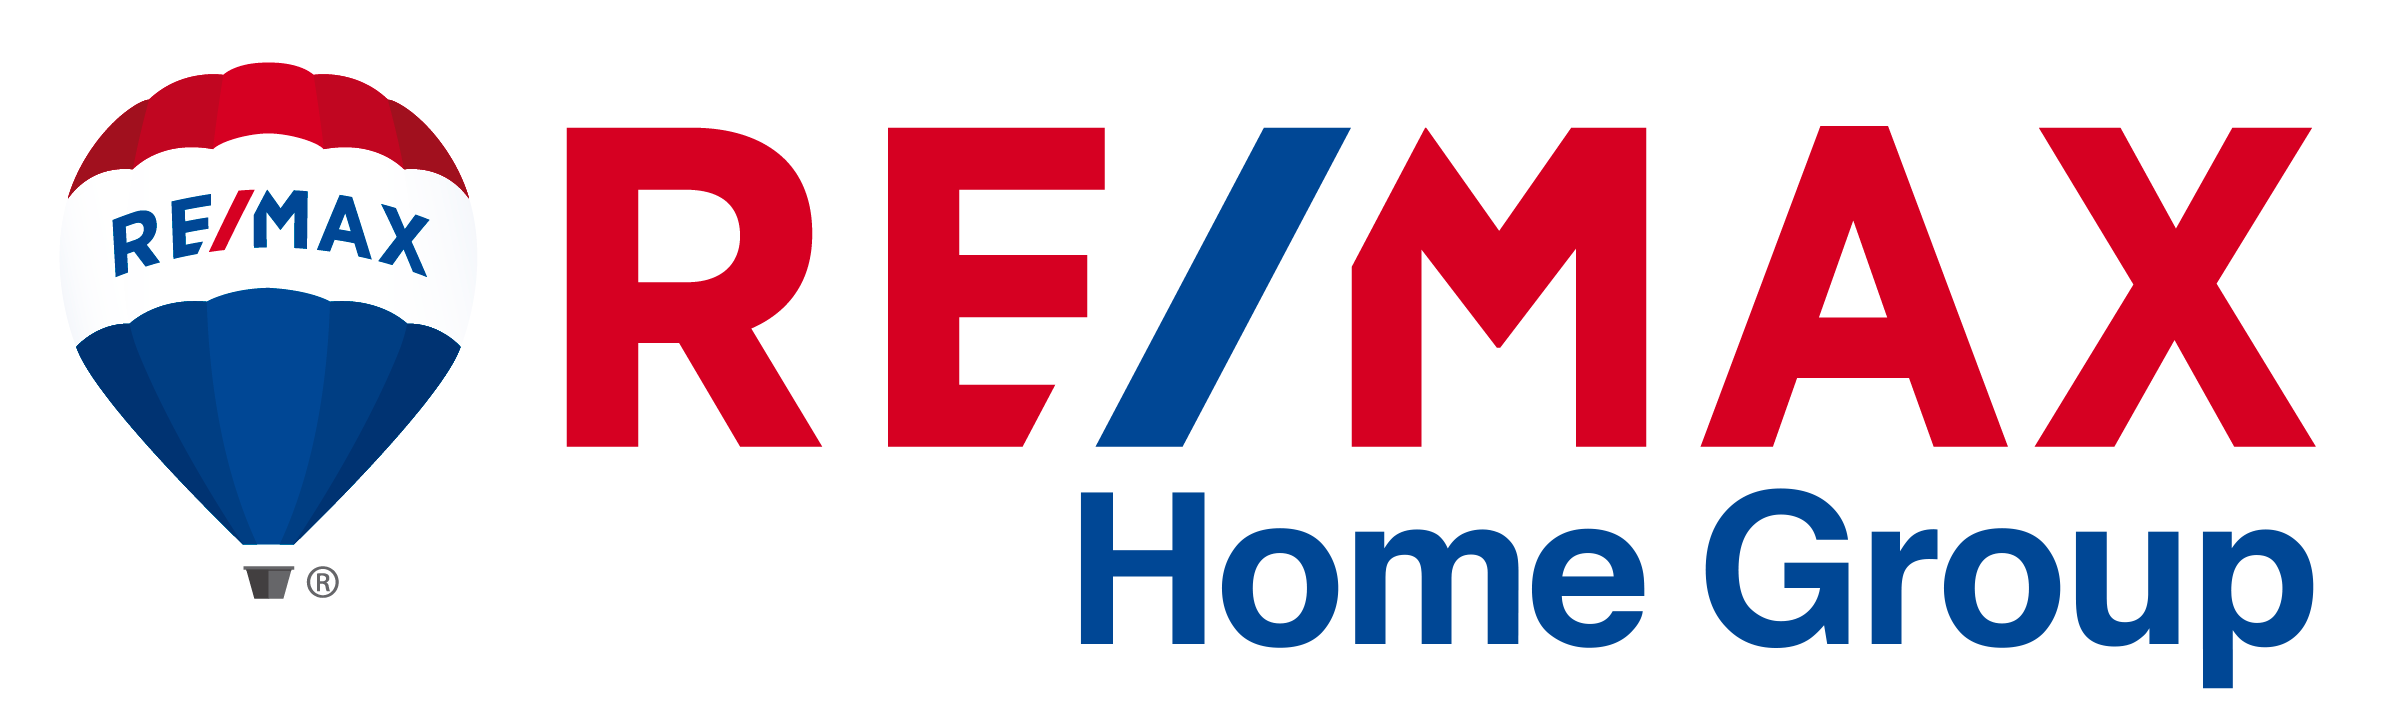 RE/MAX Home Group